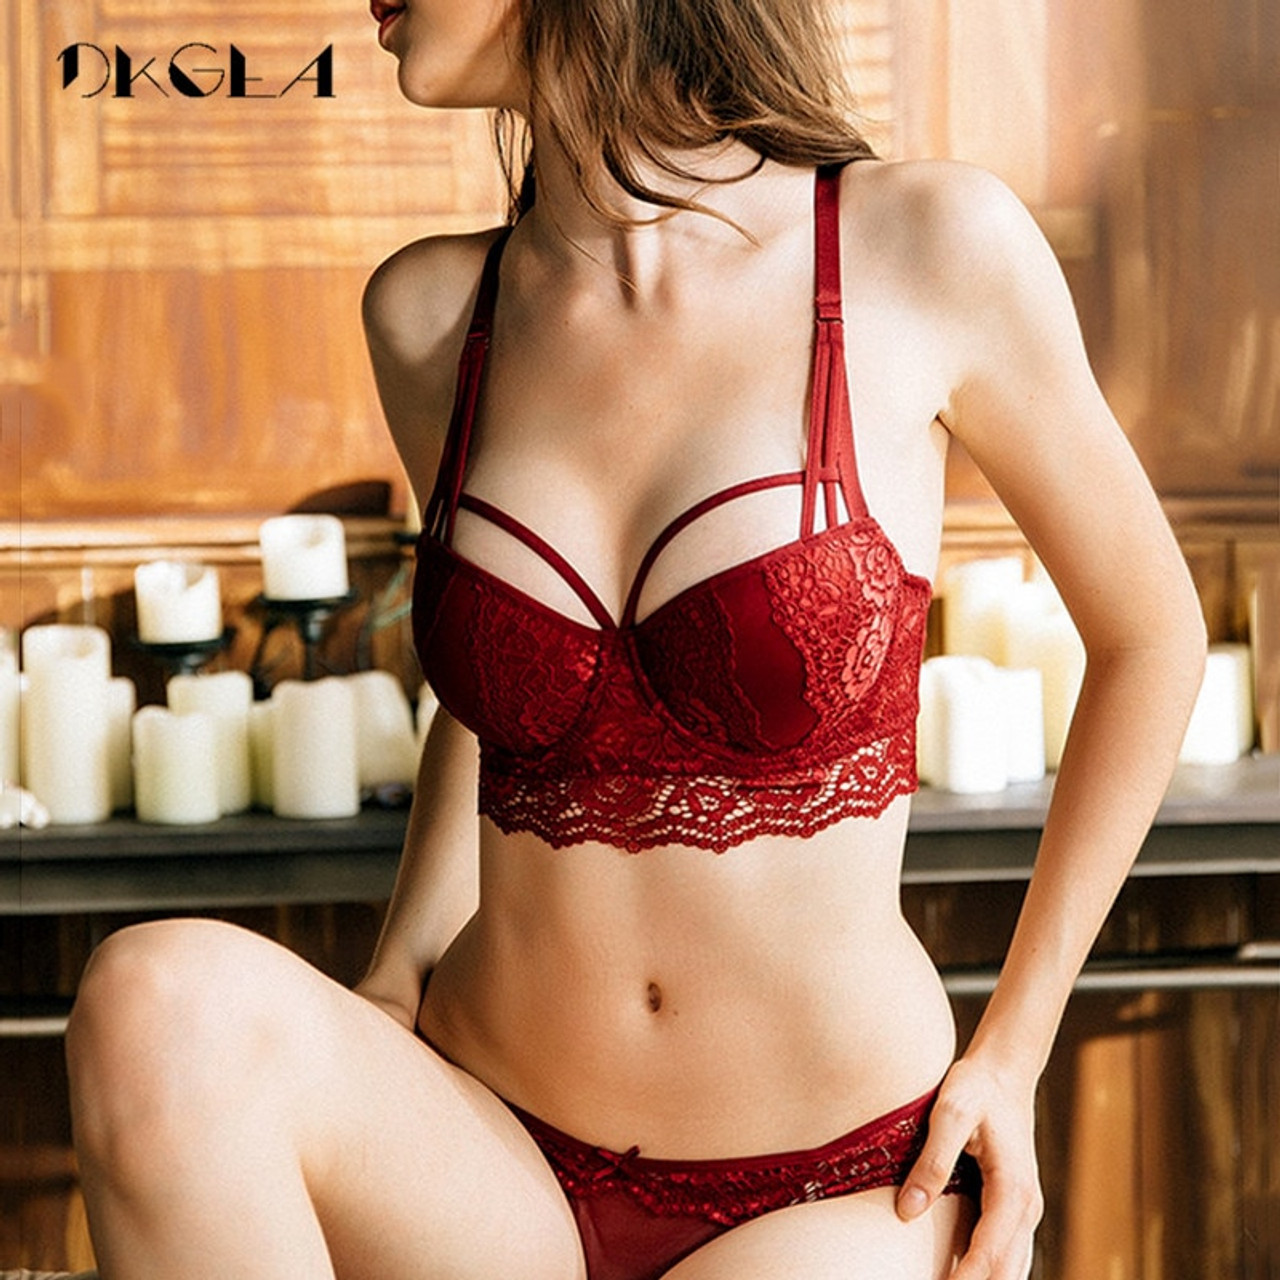 1673f2fa28 New Top Sexy Underwear Set Cotton Push-up Bra and Panty Sets 3 4 Cup ...